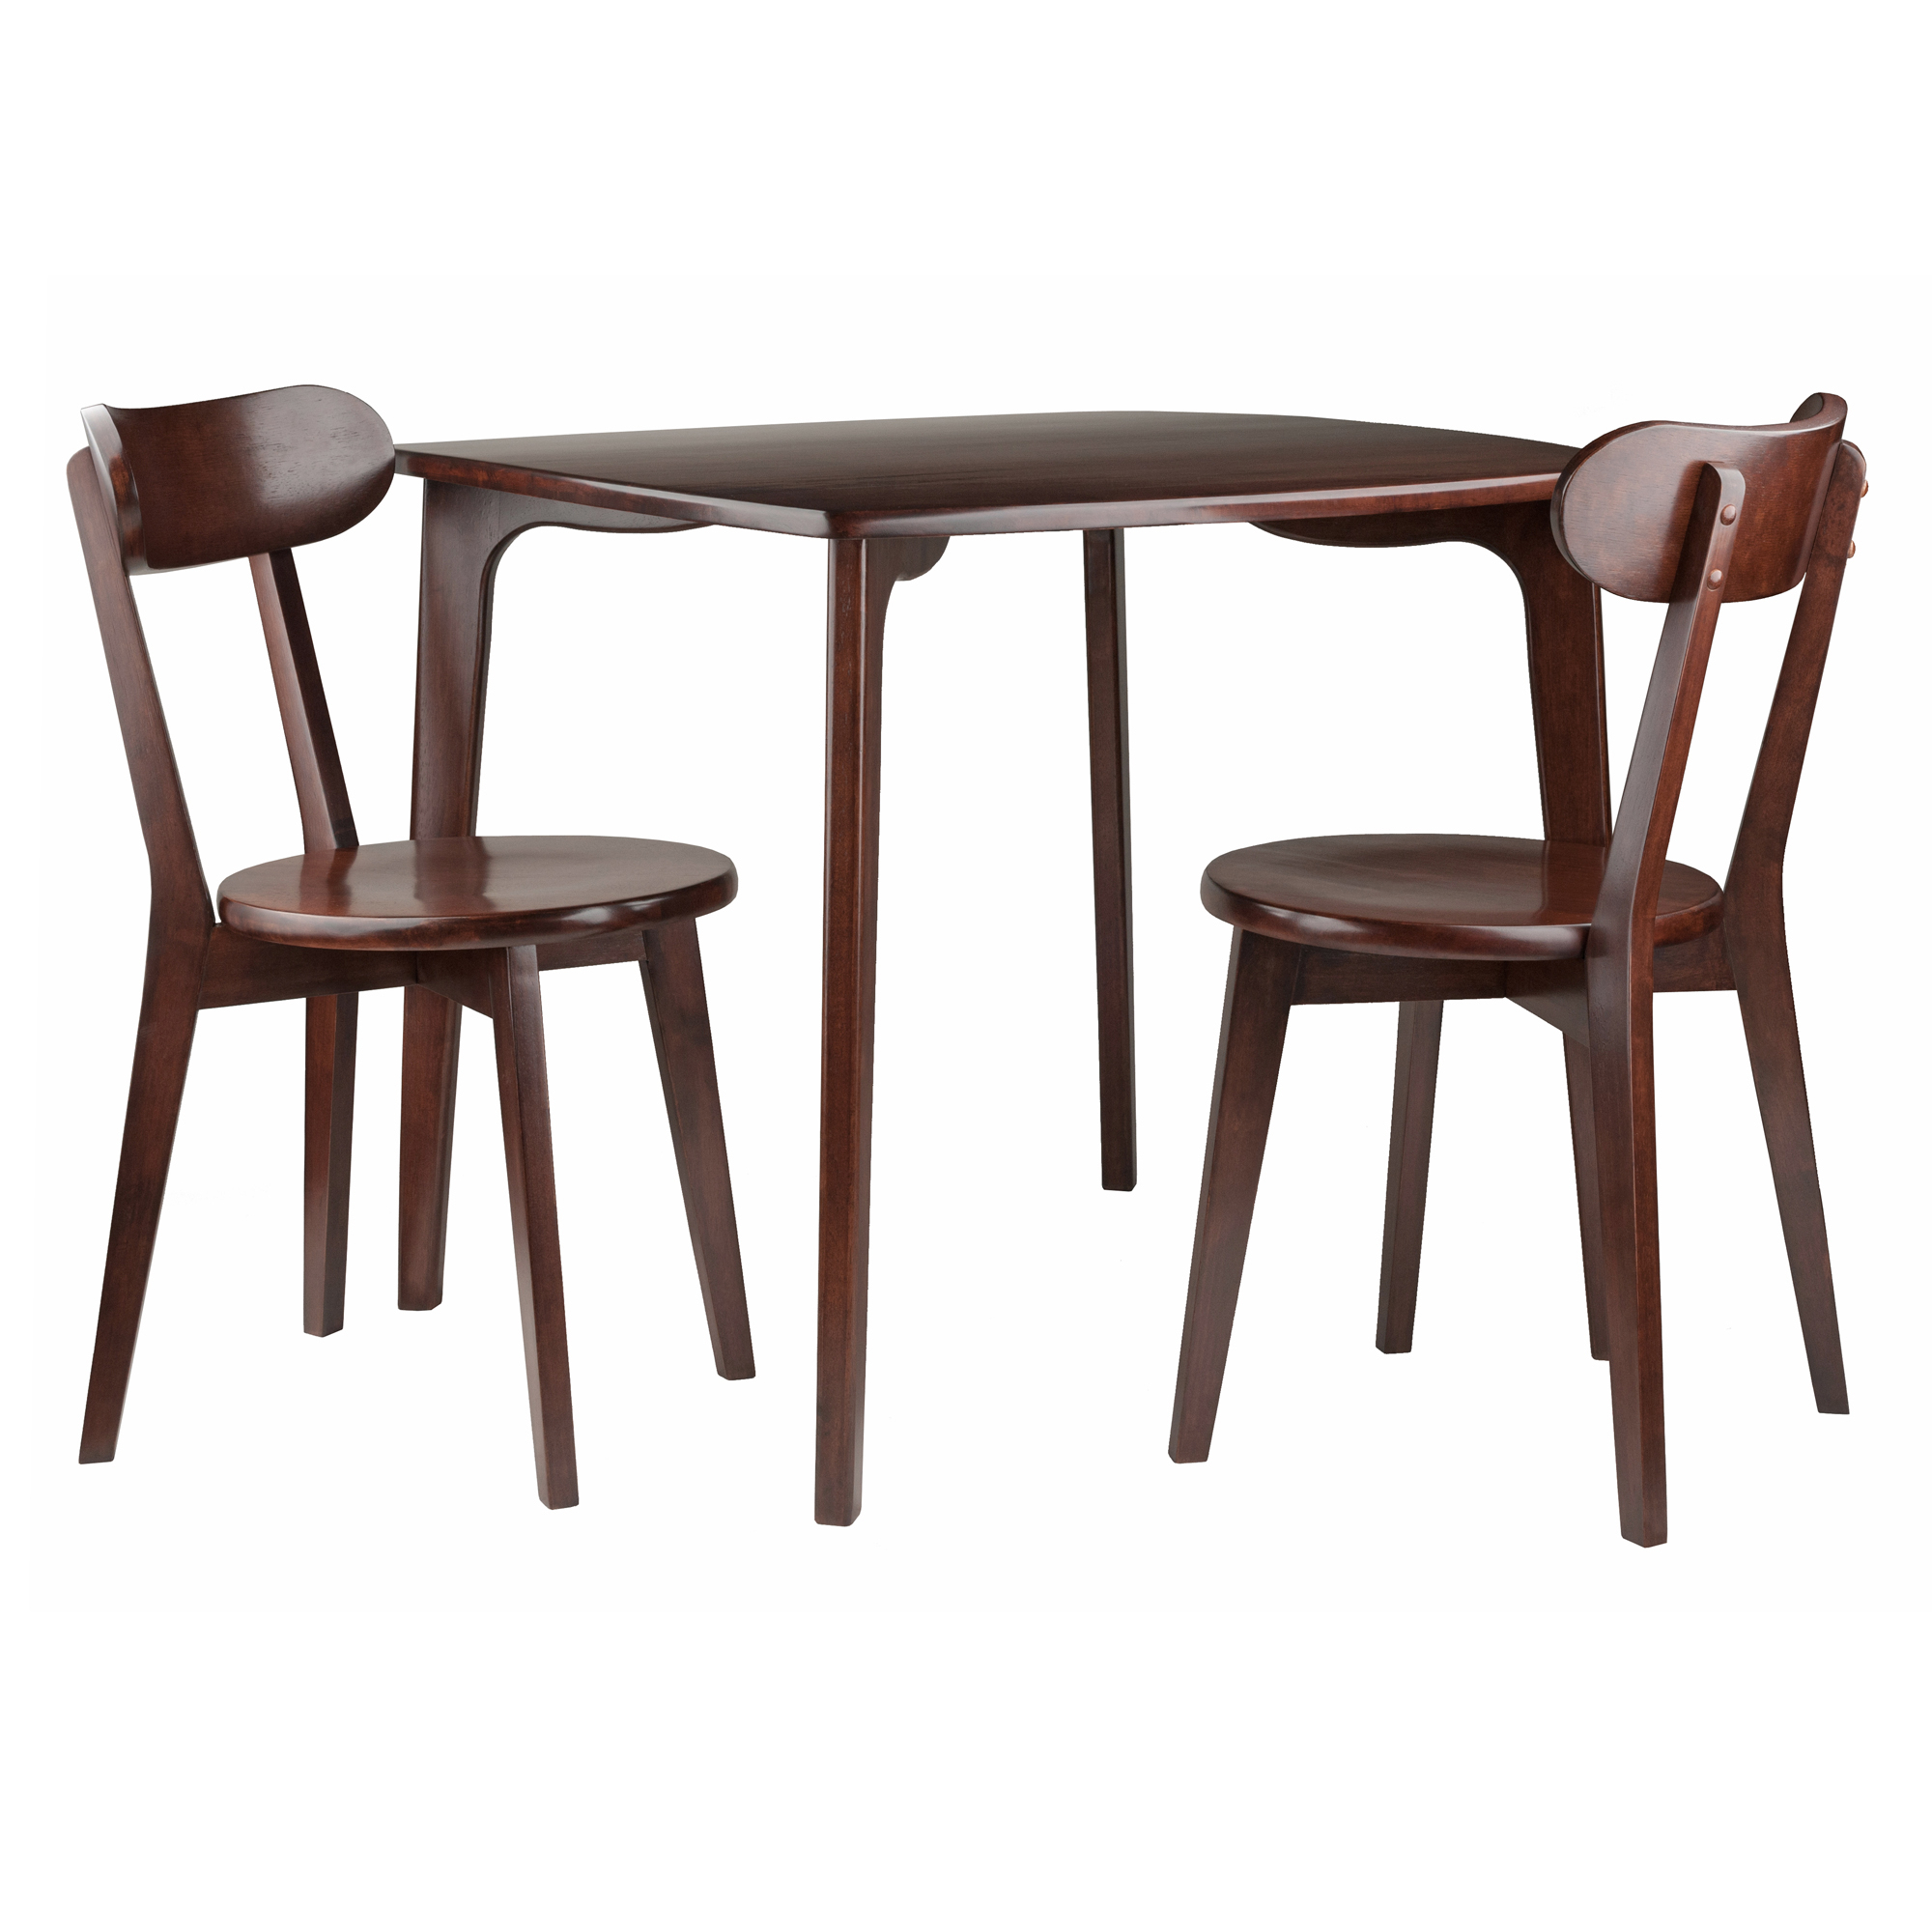 Winsome Wood Pauline 3 Piece Dining Table With Chairs Set, Walnut Throughout Well Known Winsome 3 Piece Counter Height Dining Sets (View 10 of 25)